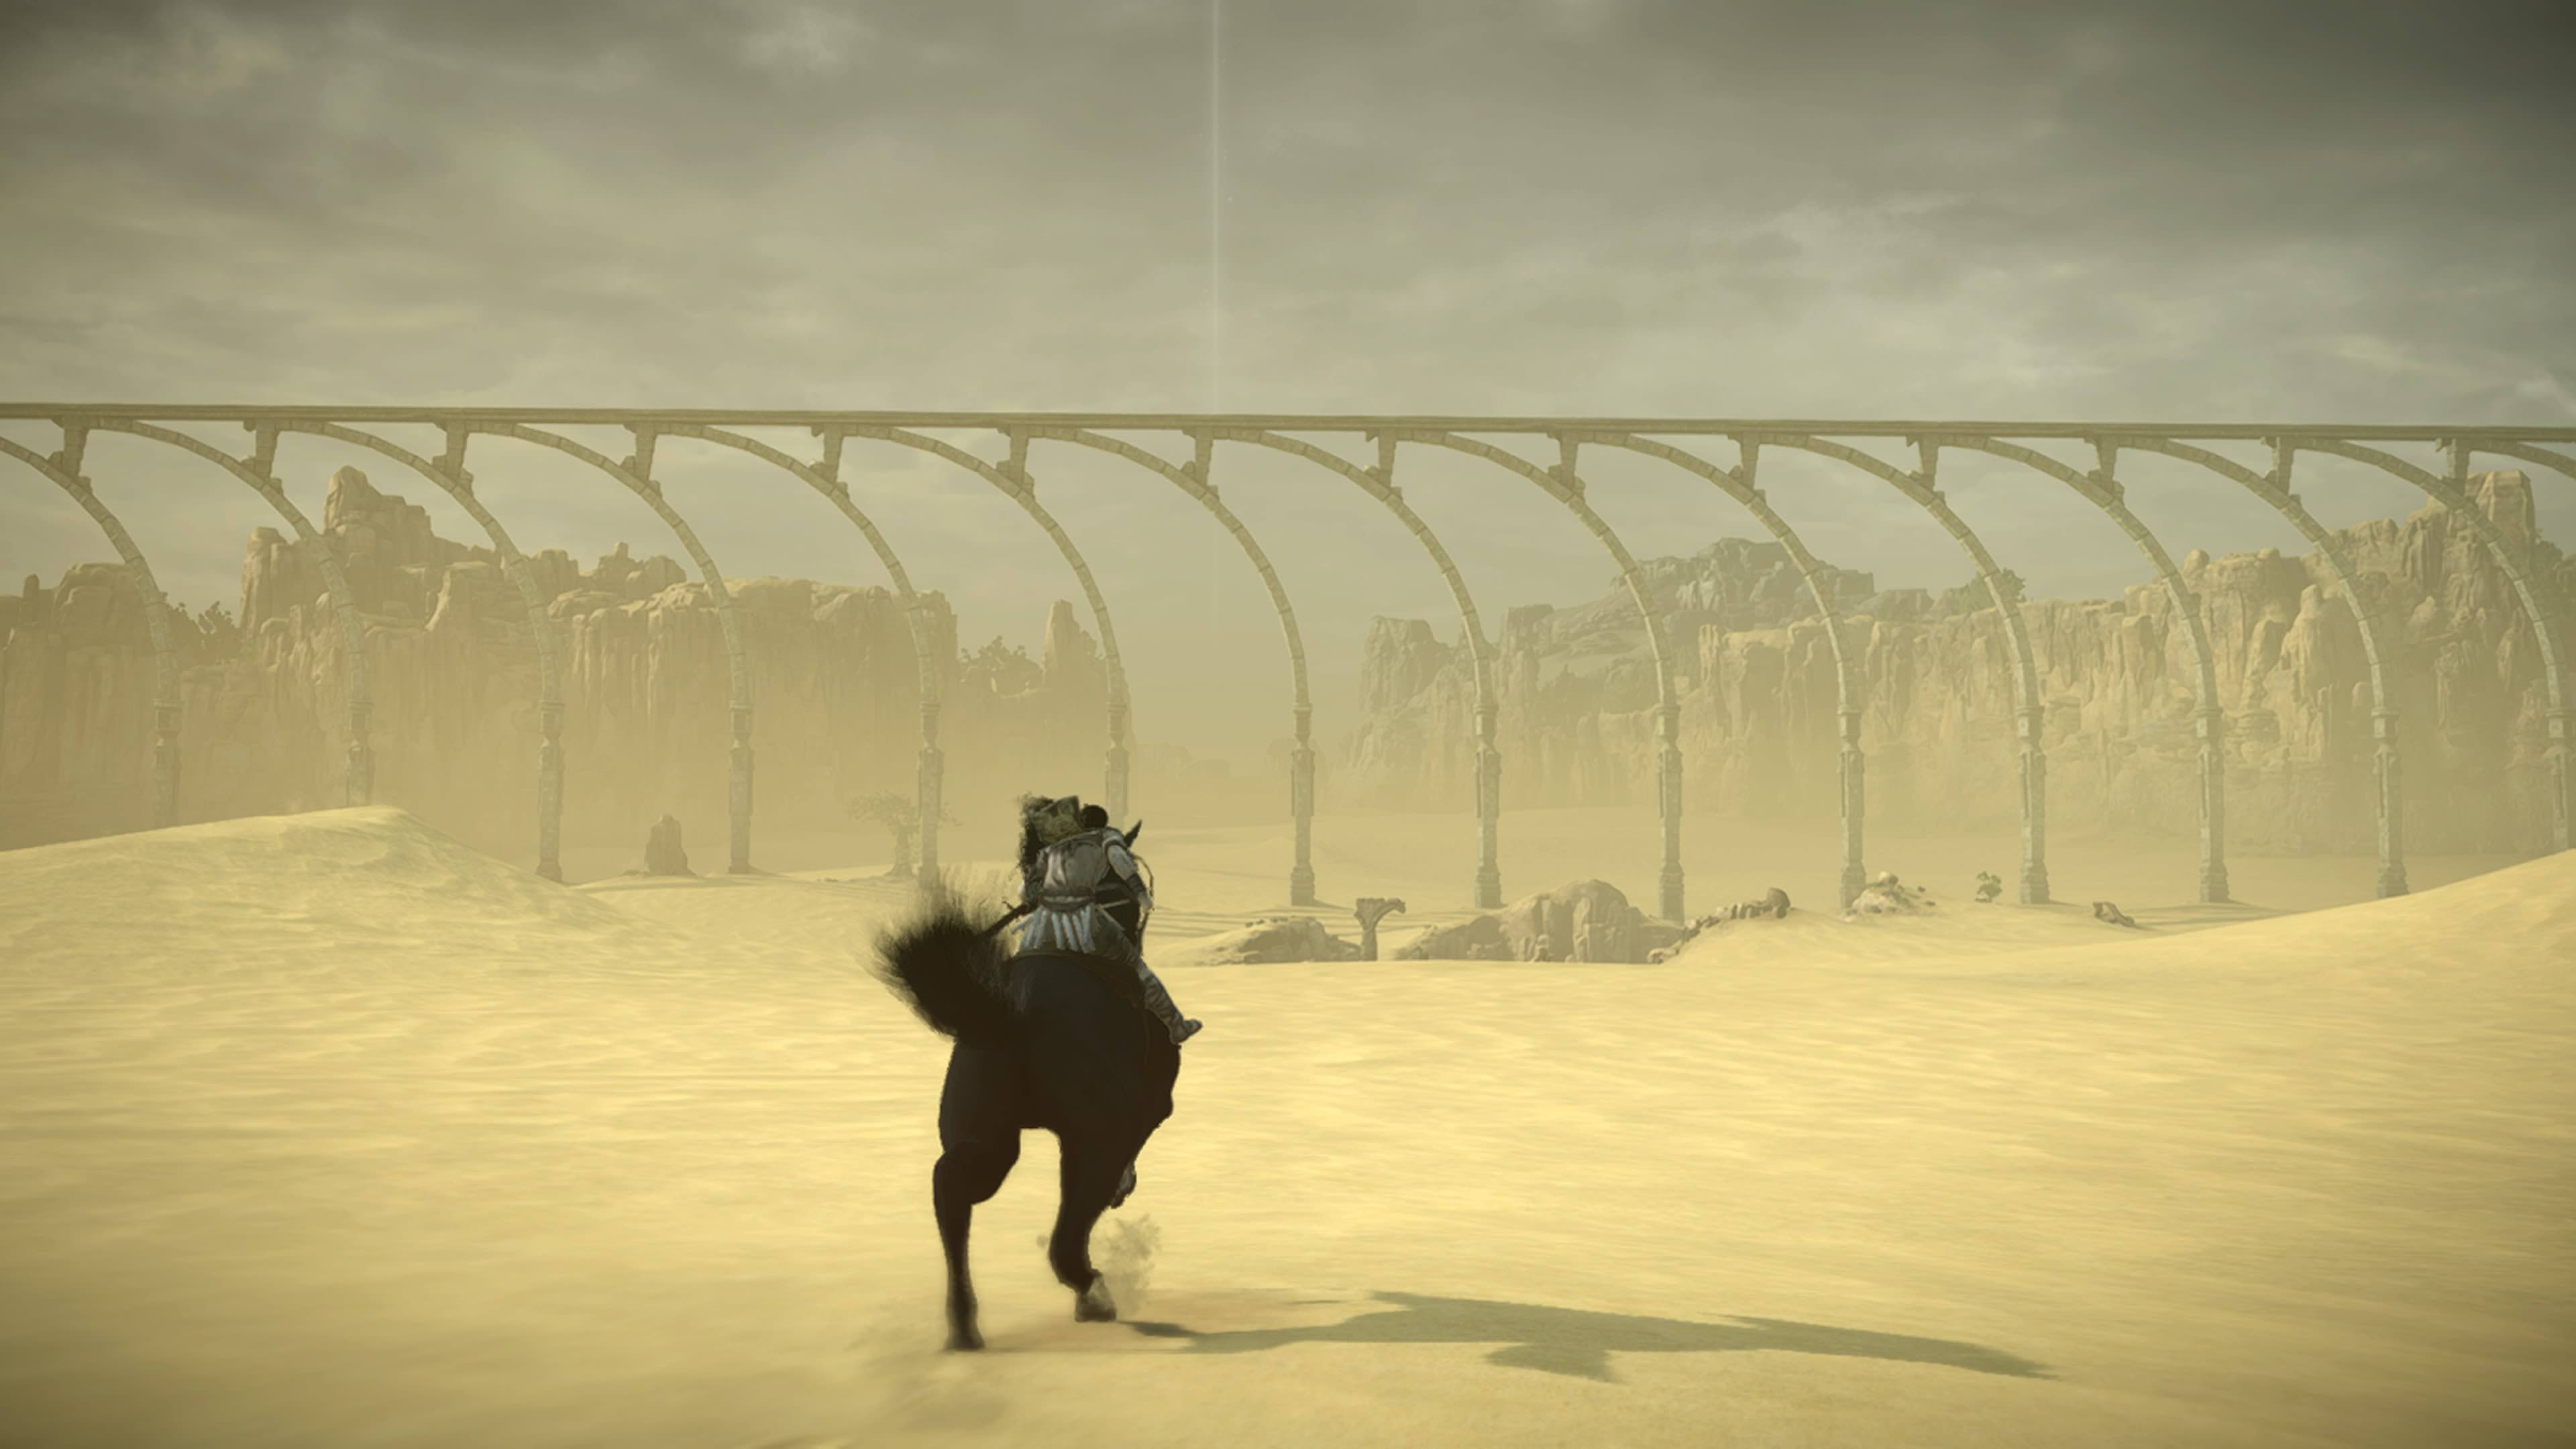 Shadow_of_the_Colossus_Coloso_11_1